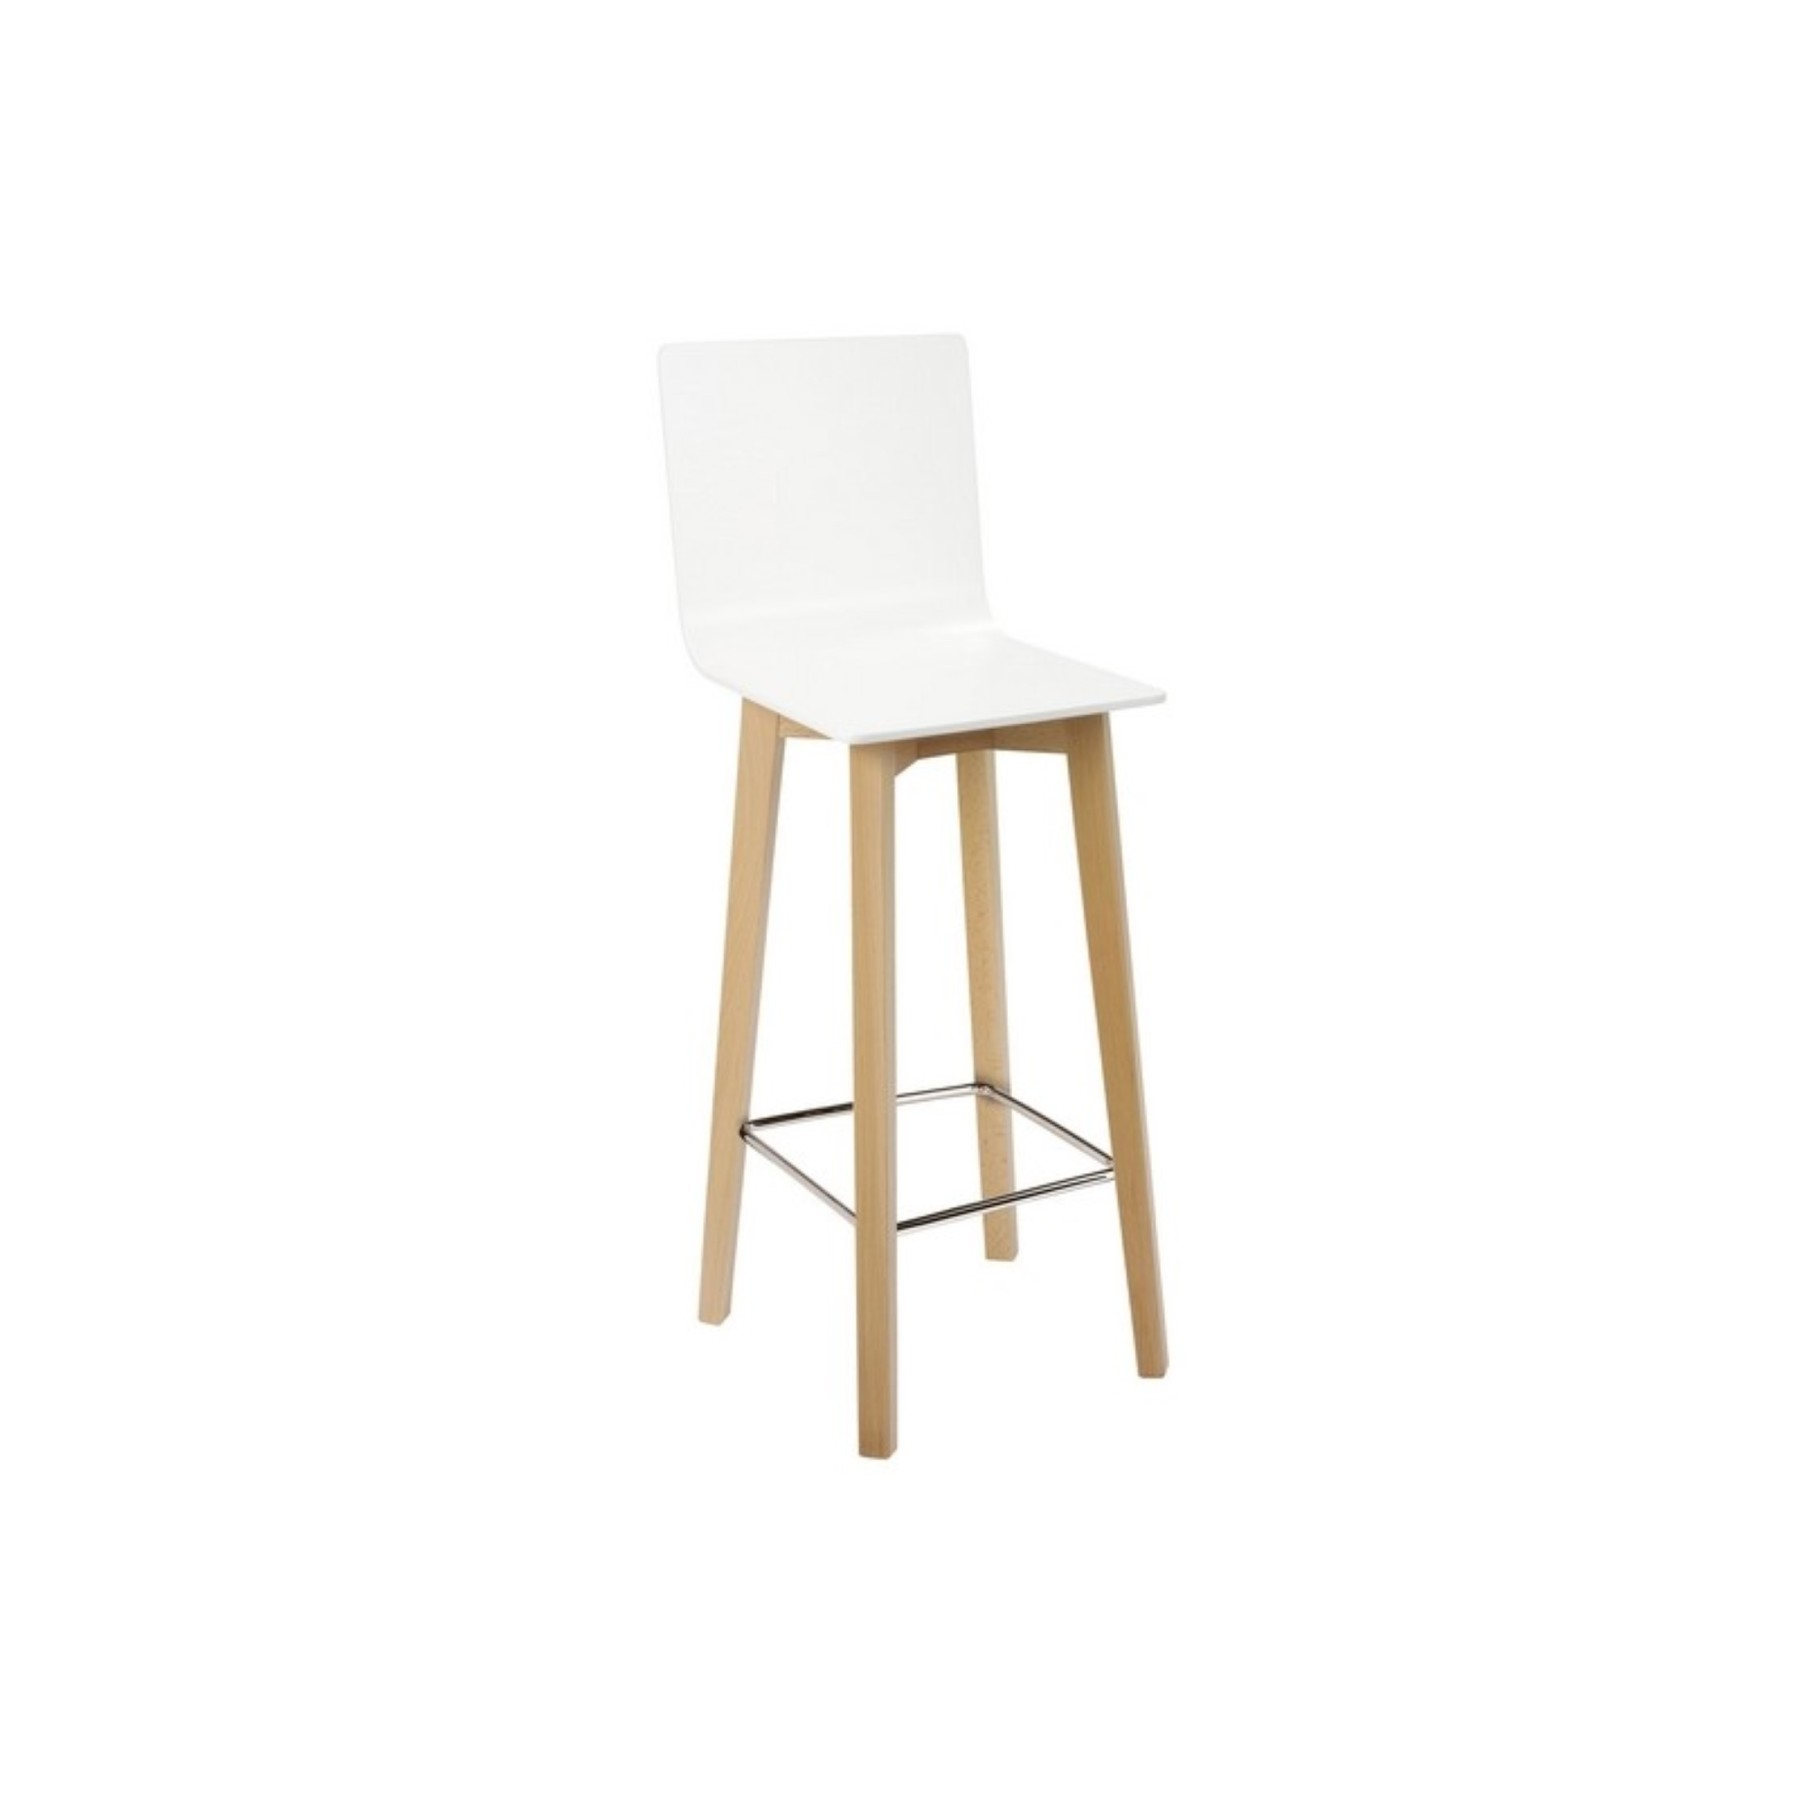 Beech's Stool Shimmer With Wooden Feet And Hoop Chrome-up Seat Monocarcasa In Beech Lacquered White Color TAPHOLE AND C